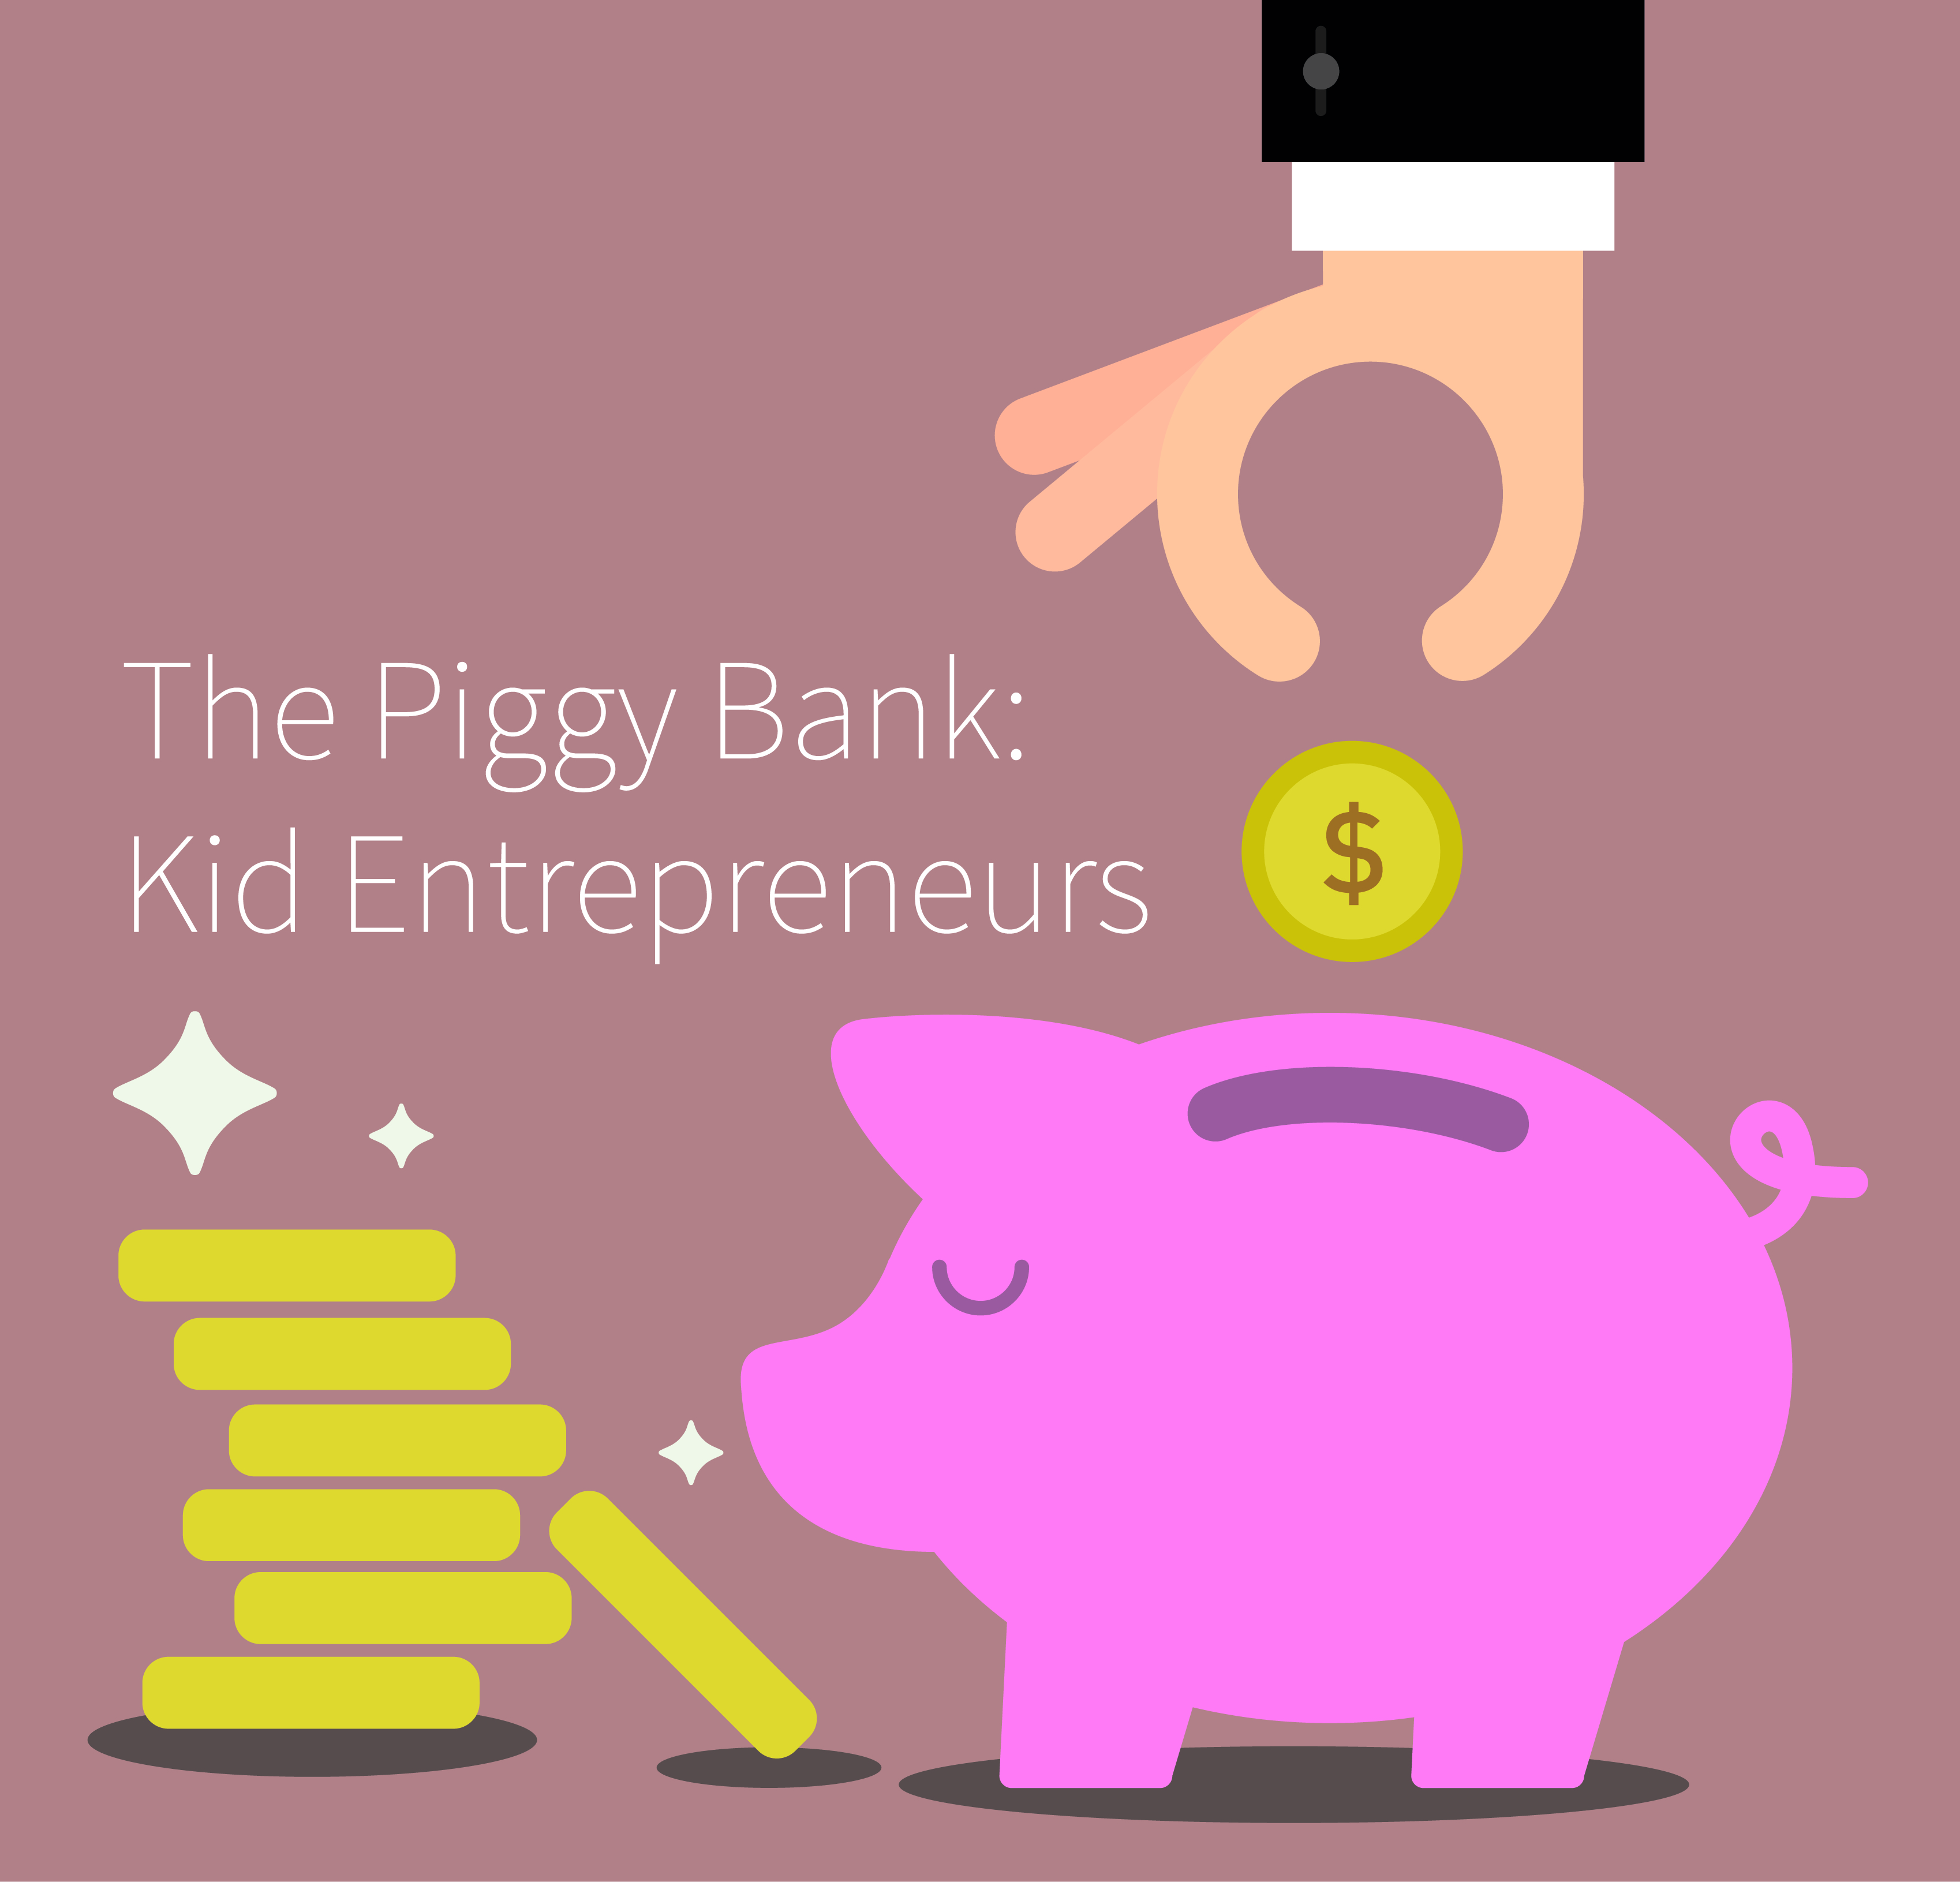 Piggy bank kid entreprenuers blog-01.jpg